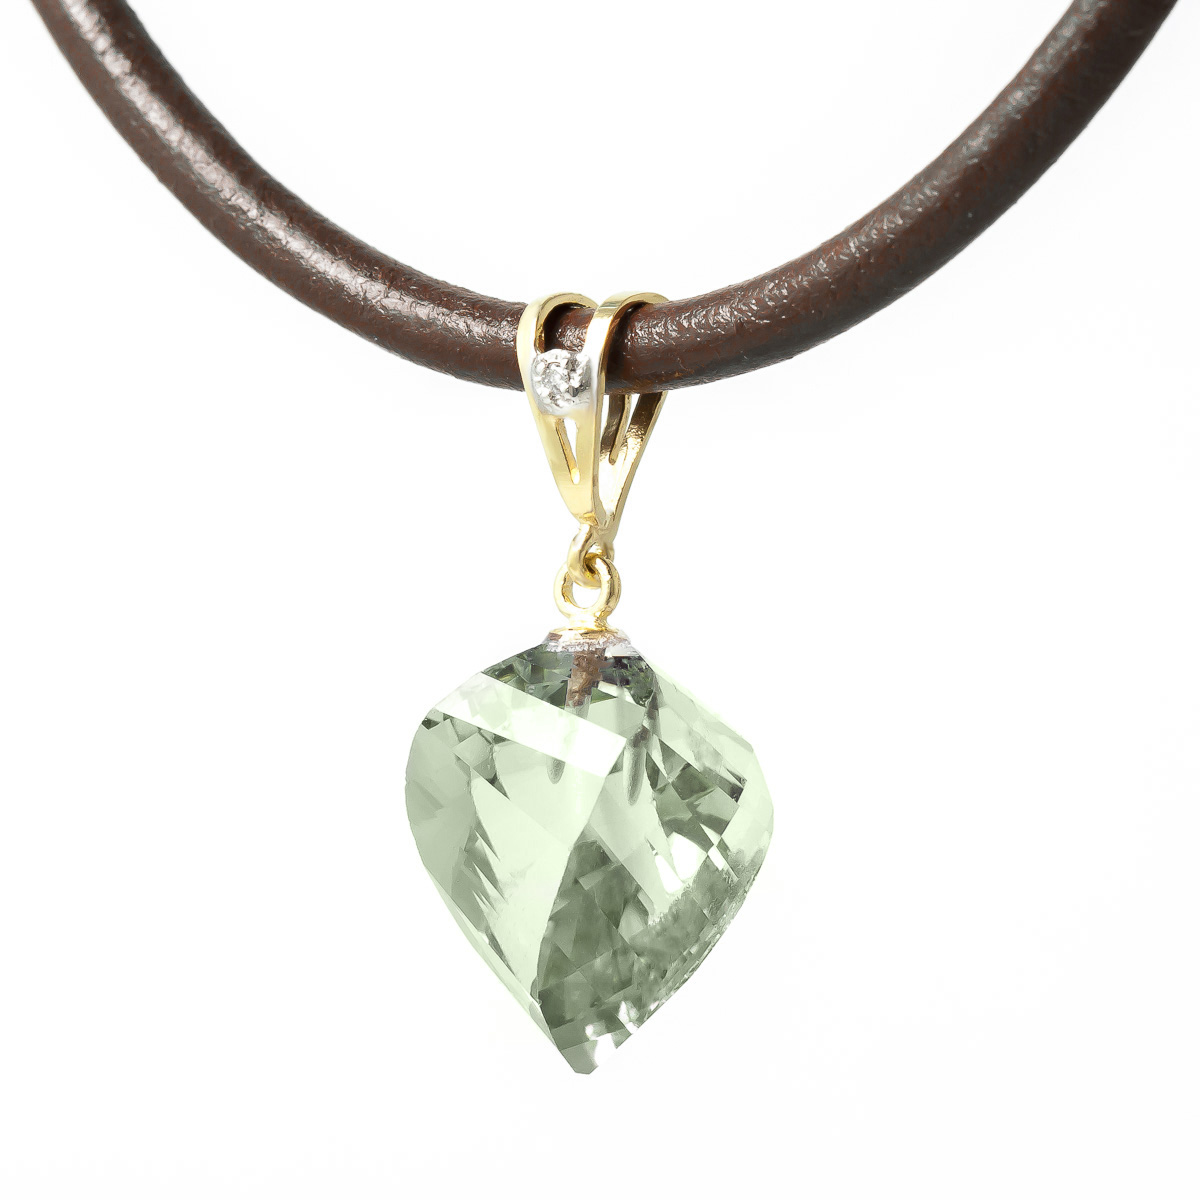 Twisted Briolette Cut Green Amethyst Pendant Necklace 13.01 ctw in 9ct Gold